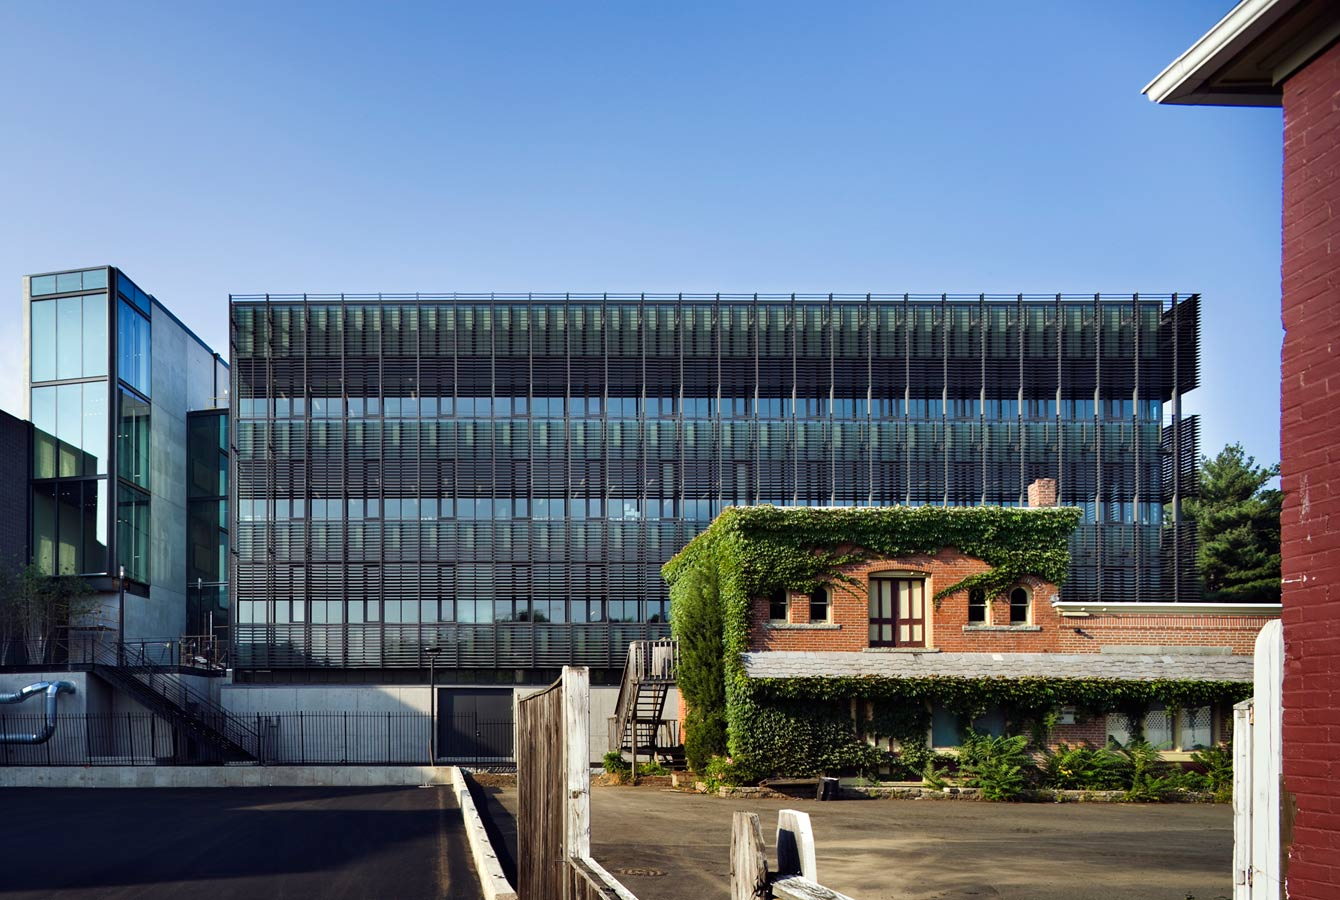 <p>The program of the building demanded an exceptional quality of light, low energy usage, and operable windows. Working with the curtainwall manufacturer Schuco and Kalwall Corporation, we developed a wall system that incorporates solar shading, a triple glazed low-e vision panel, 8-foot high operable windows, and a translucent double cavity spandrel panel. Consequently, the entire skin of the building admits natural light. The cavity traps solar radiation, forming a warm air layer that further increases thermal performance when the sun is shining. <br><small>© Peter Aaron/OTTO</small></p>